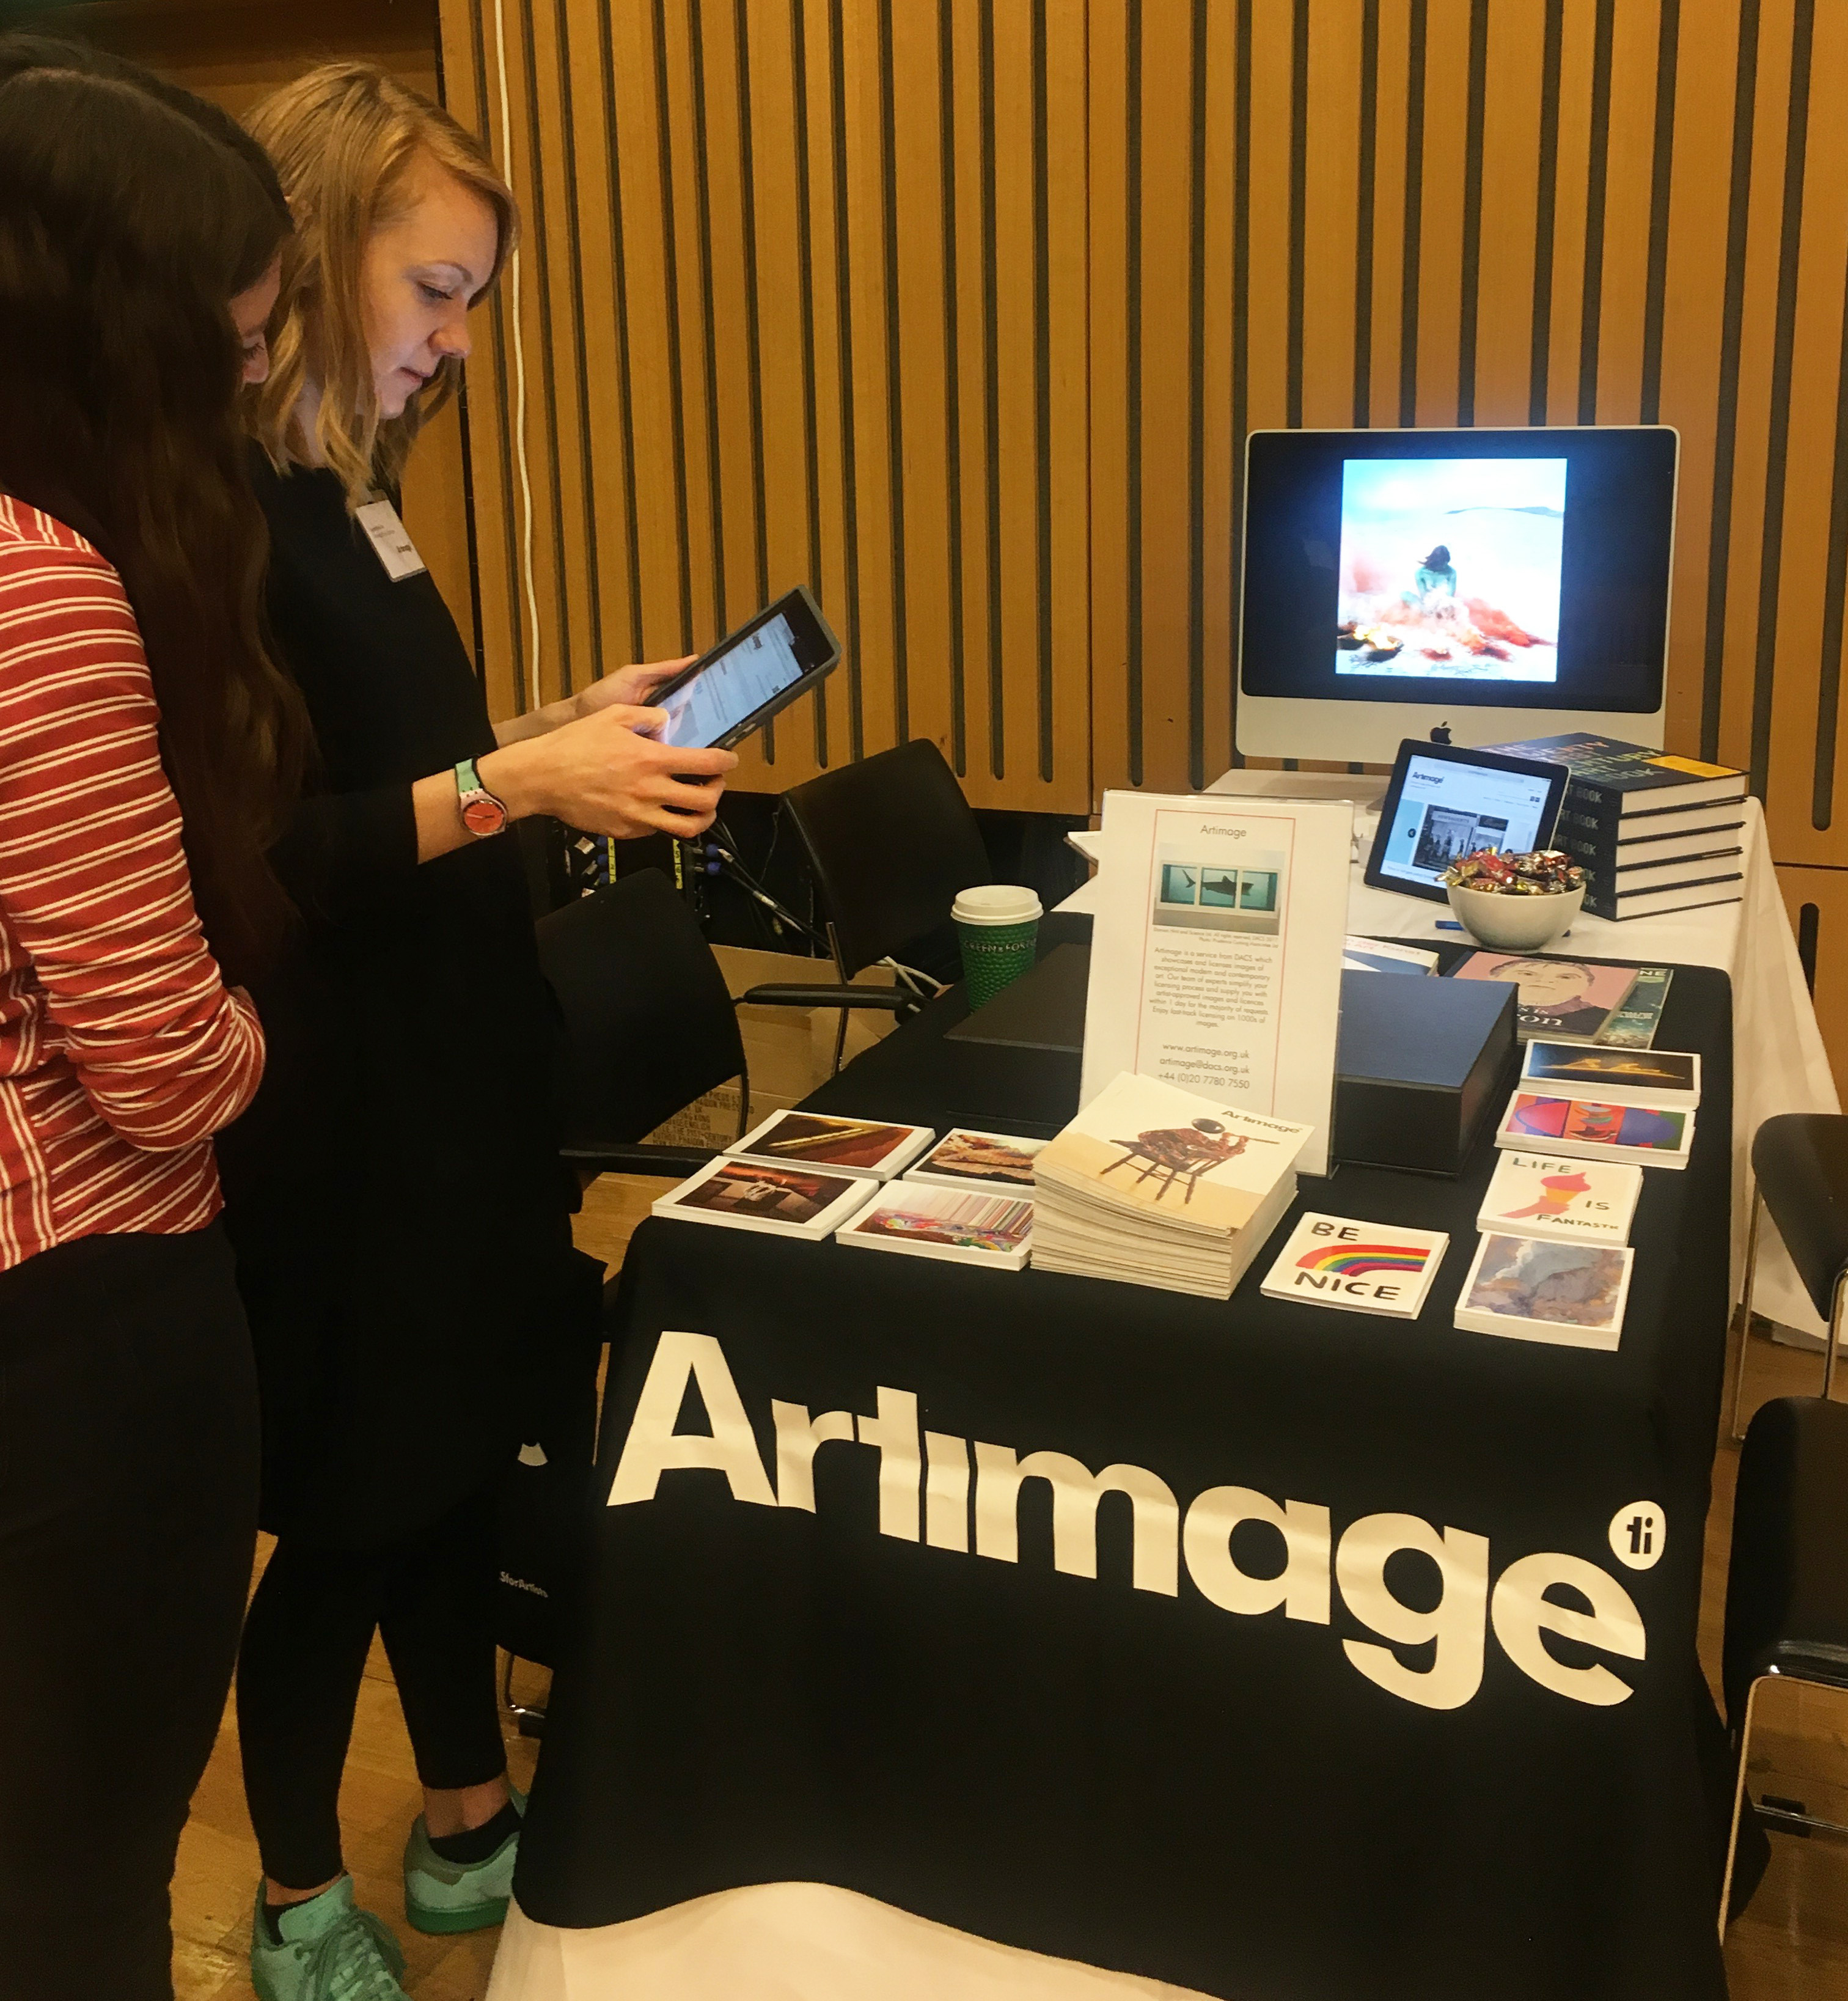 Catch up with Artimage at Fotofringe London 2018